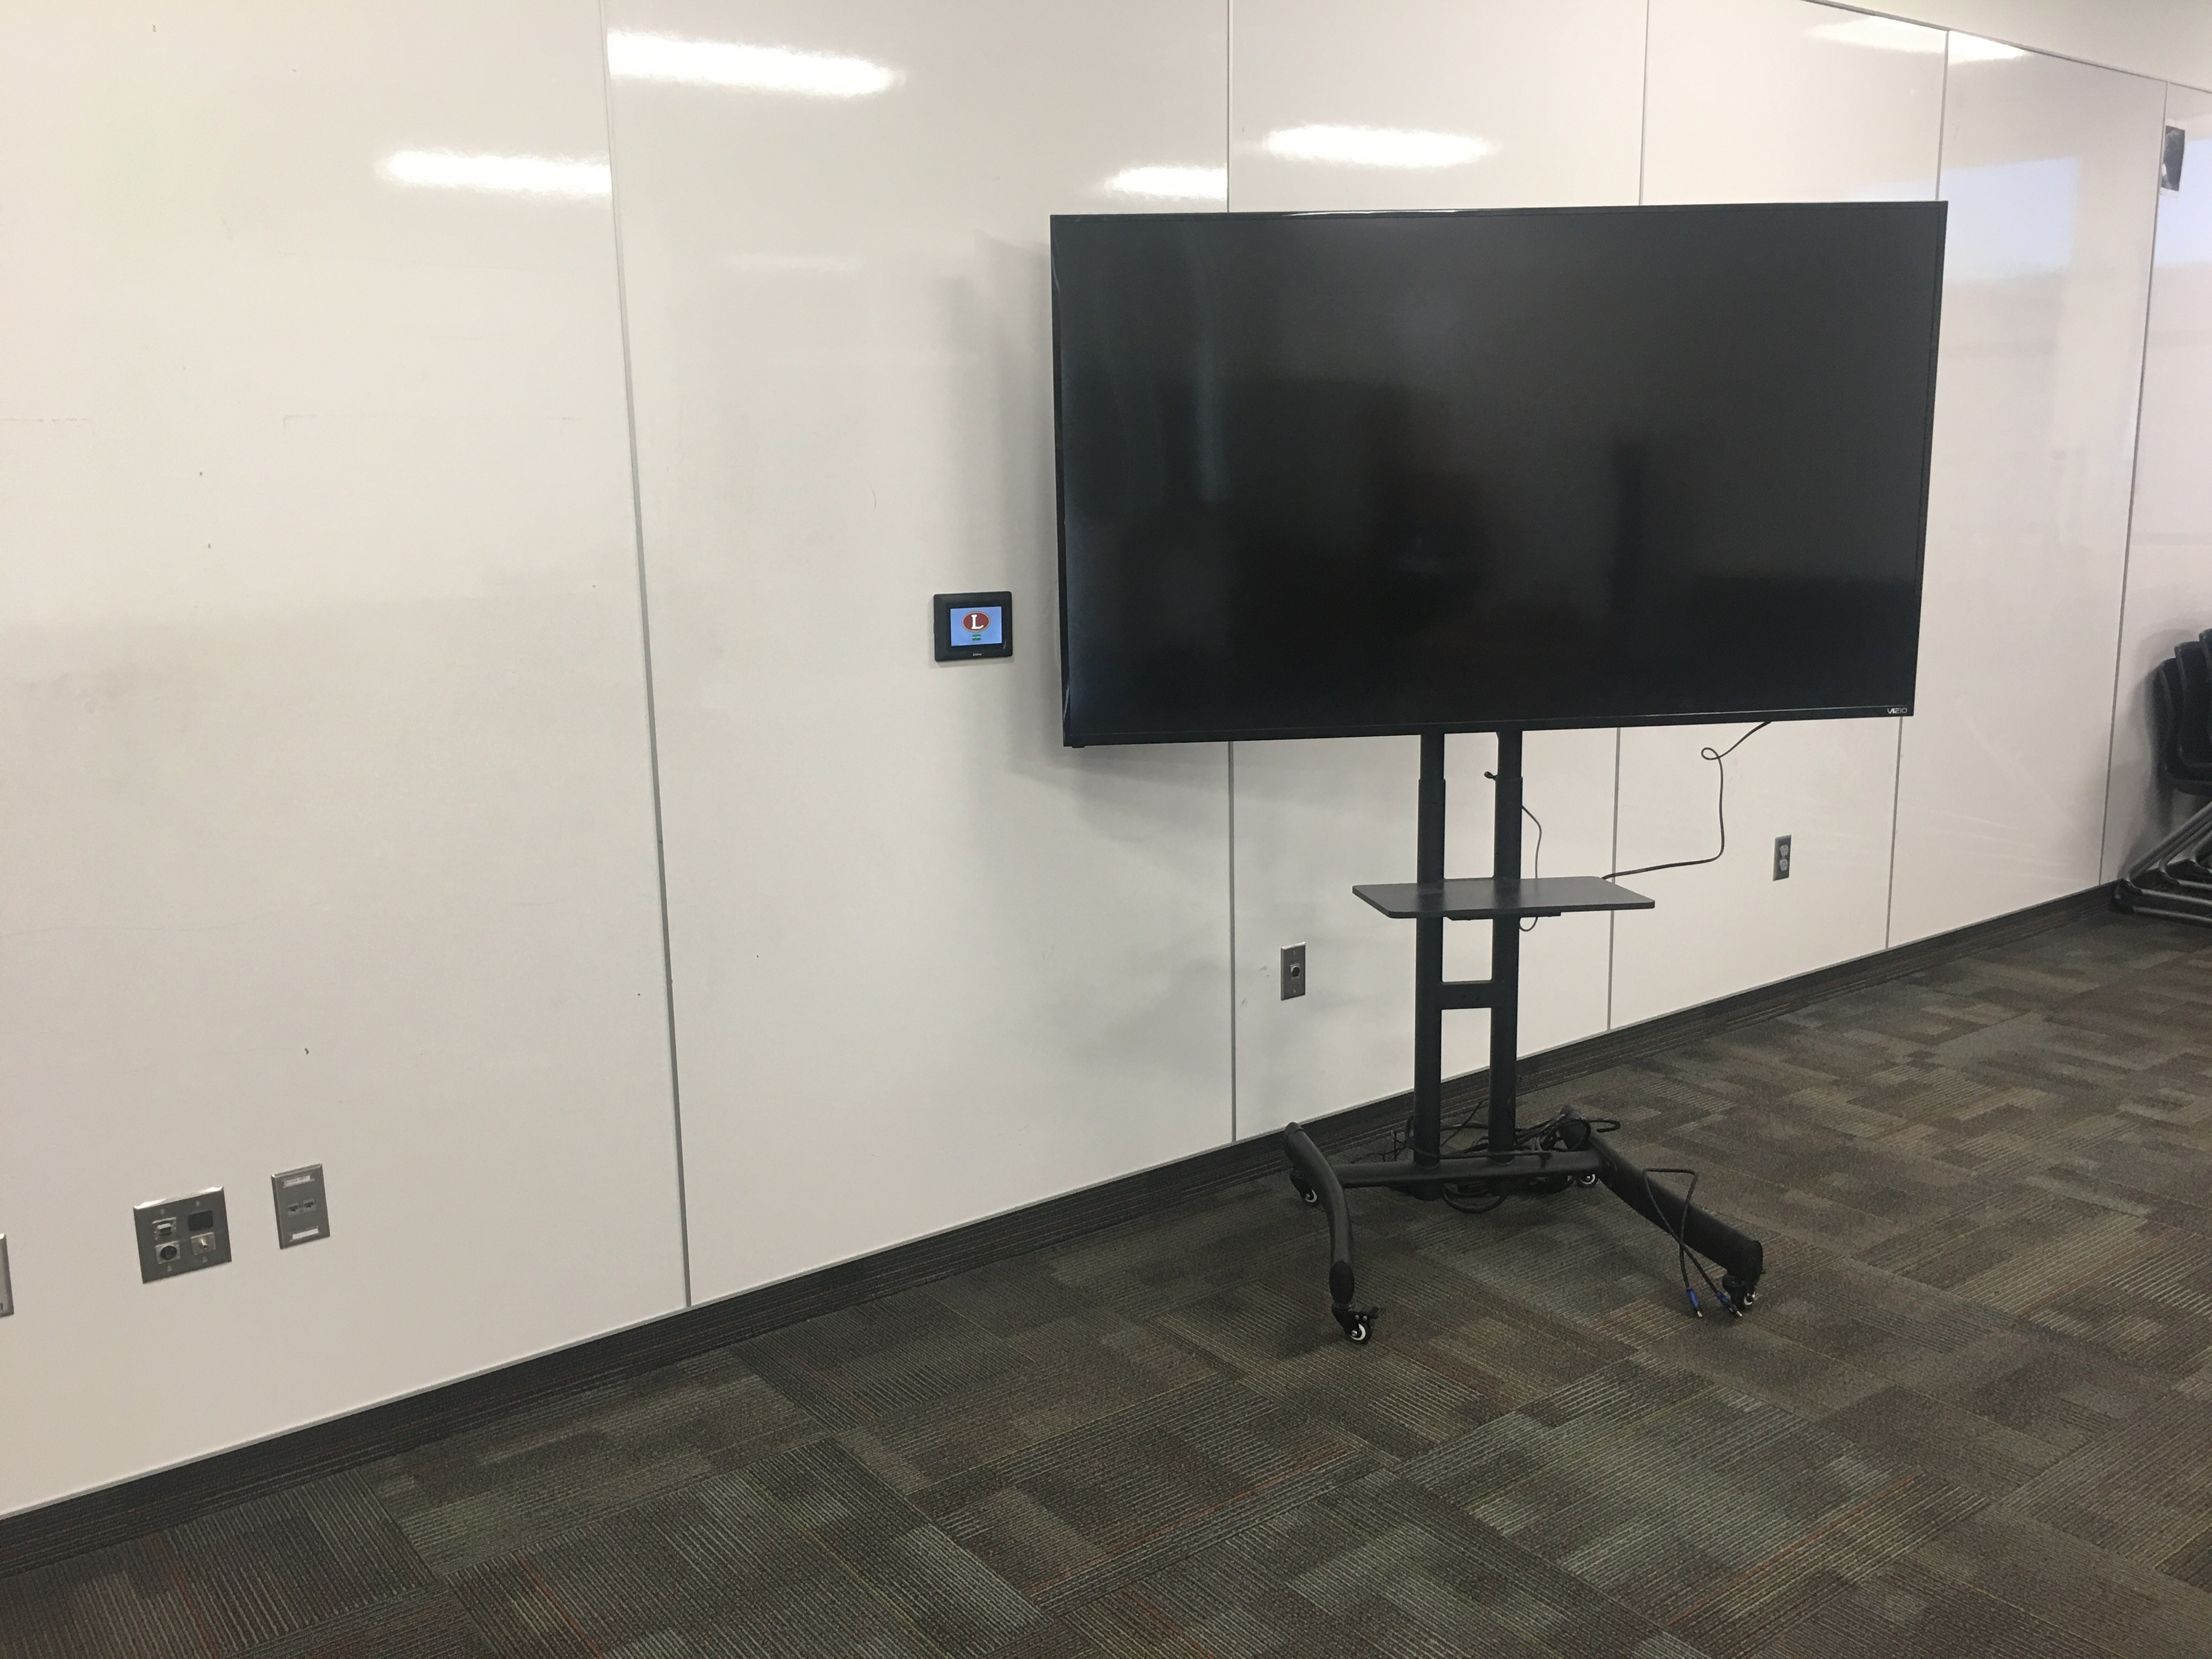 A portable display cart connected via wallplate